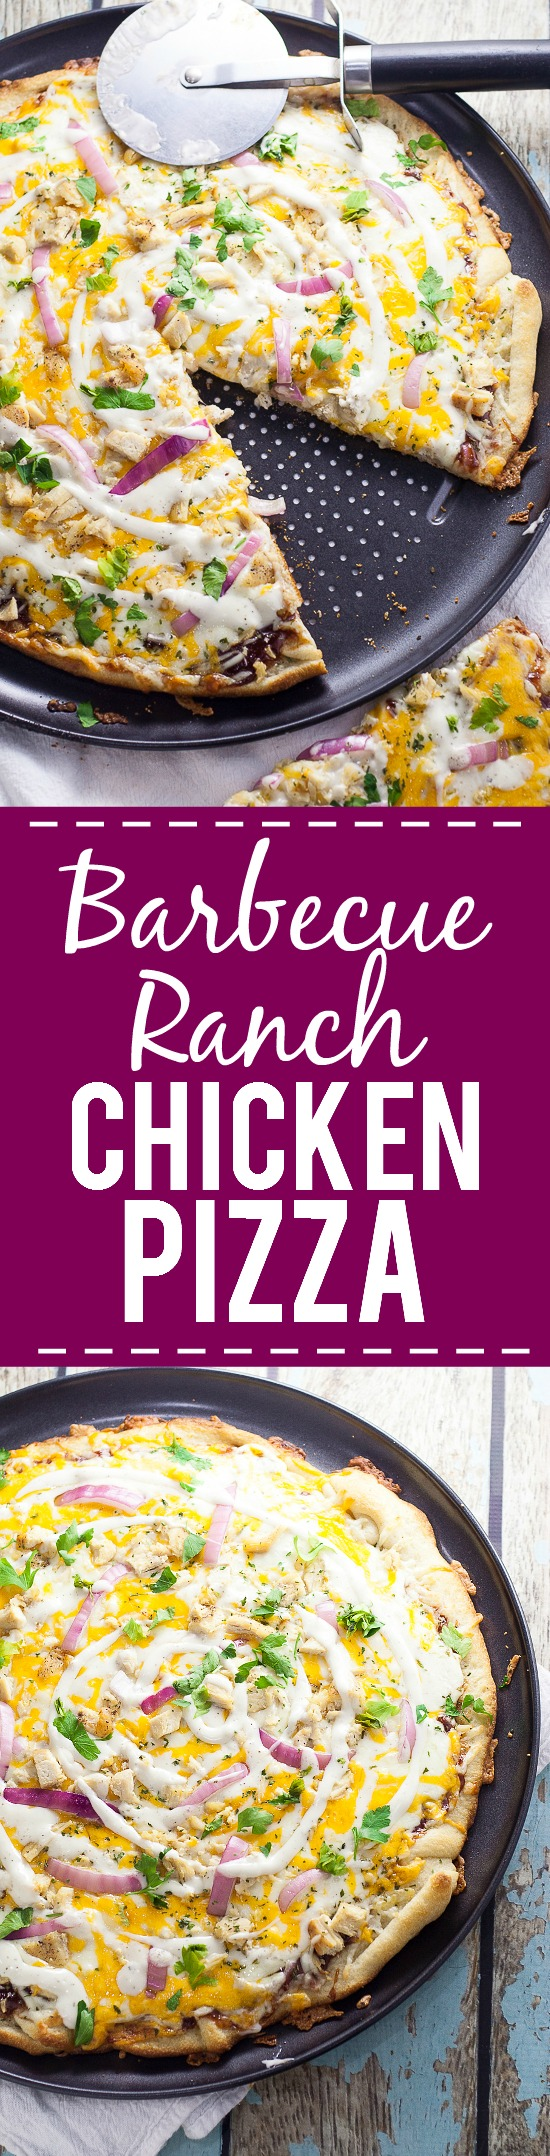 Barbecue Ranch Chicken Pizza Recipe -Barbecue and ranch are an unexpected but delicious combination that go perfectly on this Barbecue Ranch Chicken Pizza, along with chicken, red onions and lots of gooey cheese. Perfect easy family dinner recipe!